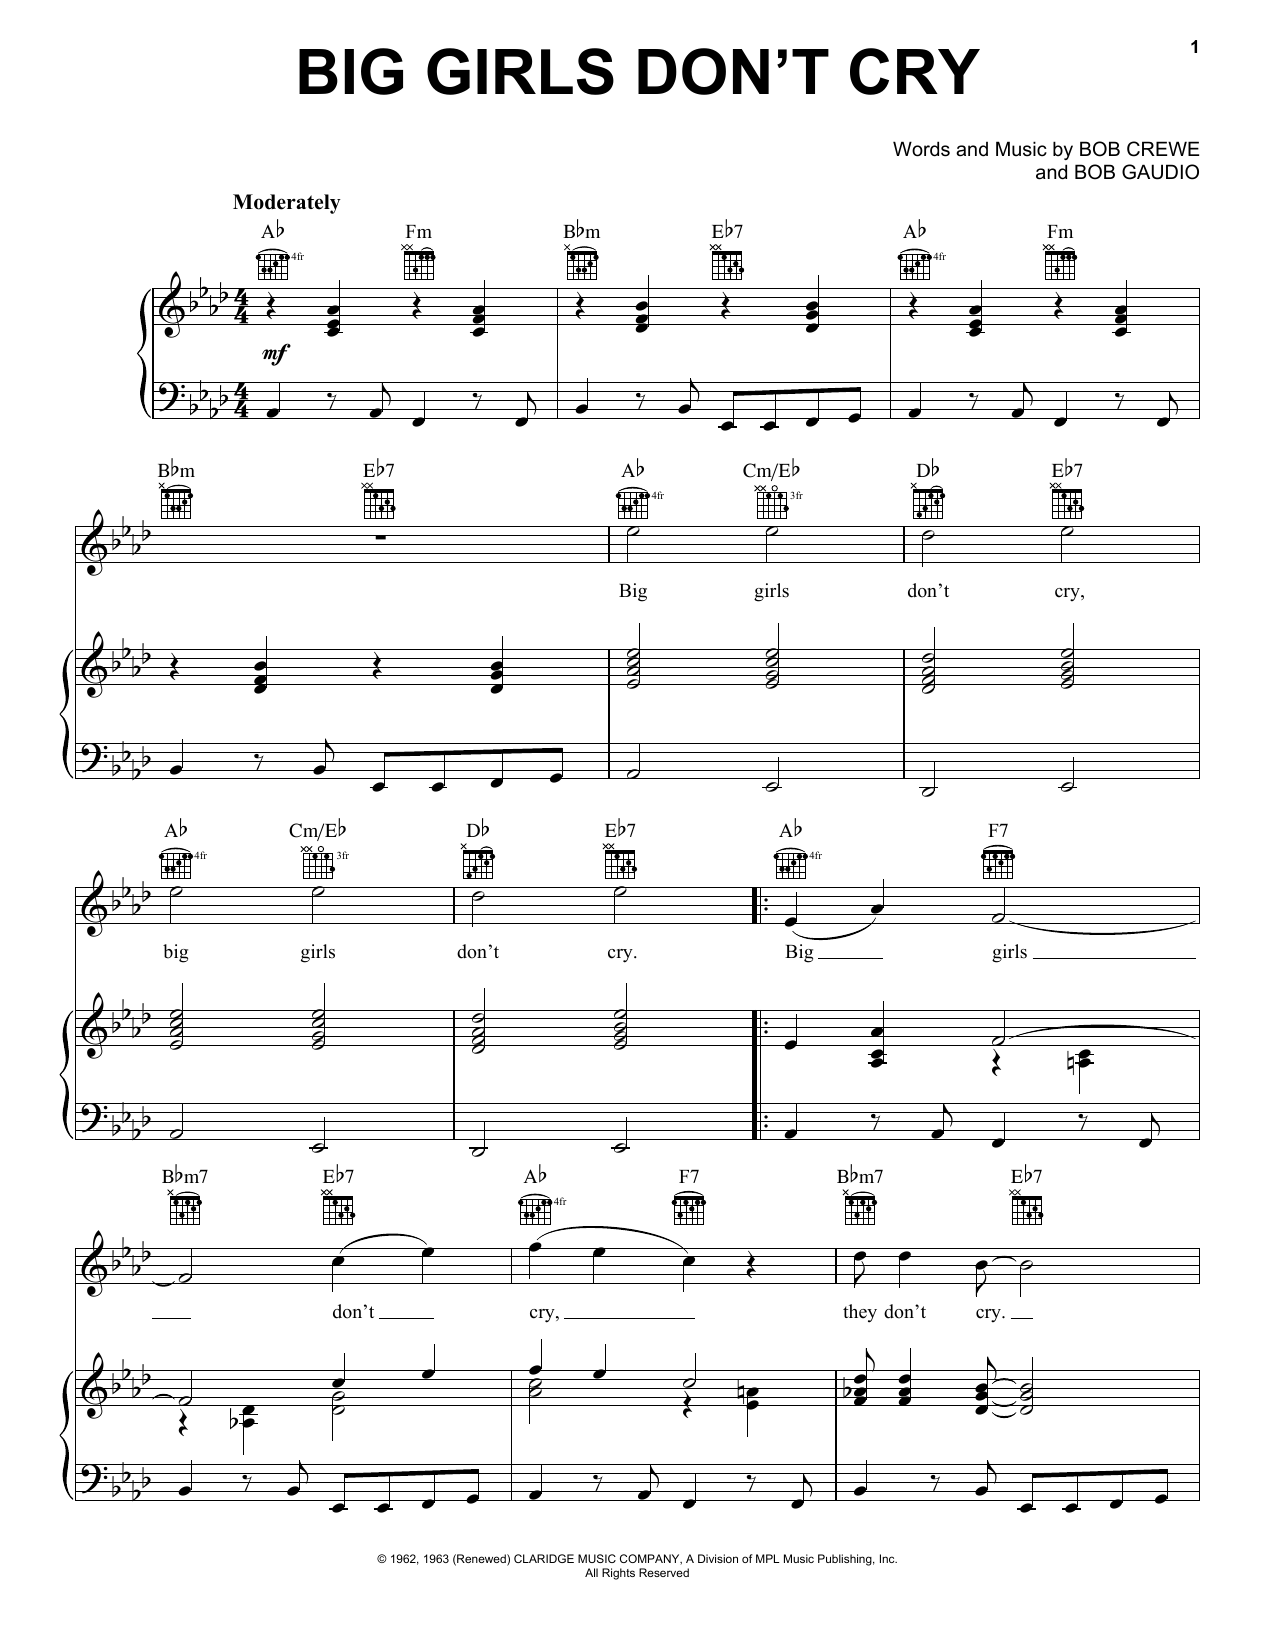 Piano uma thurman piano chords : voodoo doll guitar chords Tags : voodoo doll guitar chords guitar ...